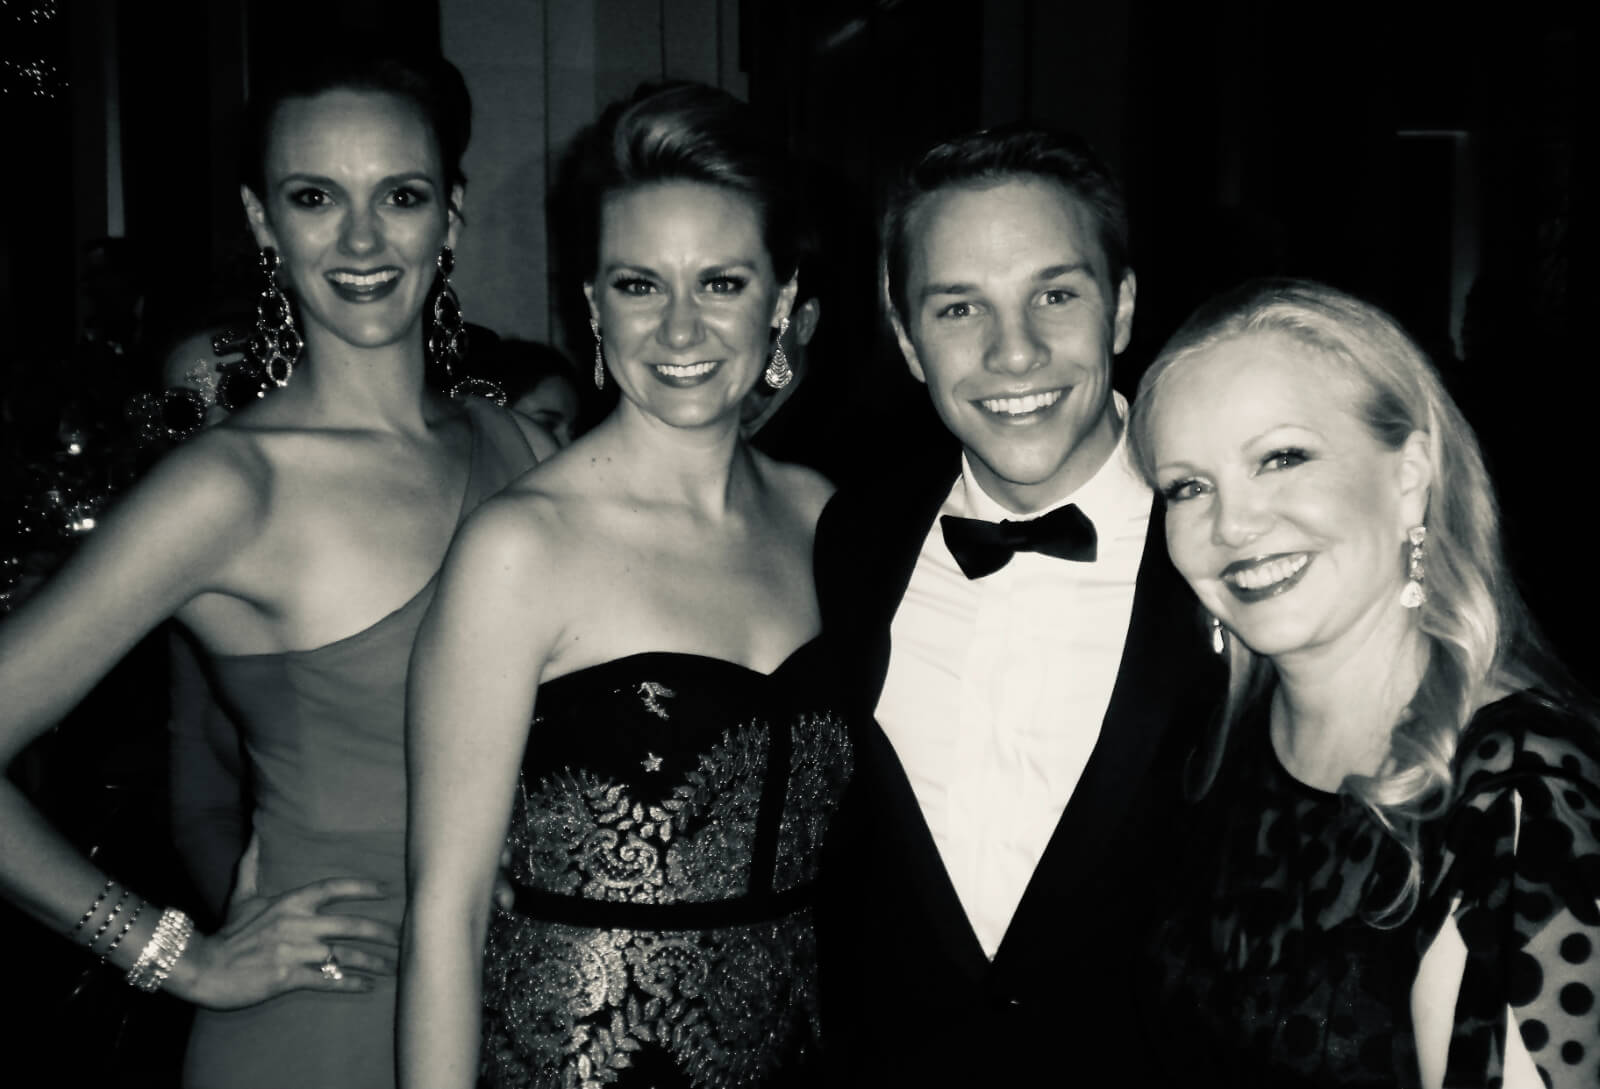 Leah Hofmann, Lauren Kadel, Josh Buscher, and Susan Stroman dressed up on Opening Night. The photo is in black and white.